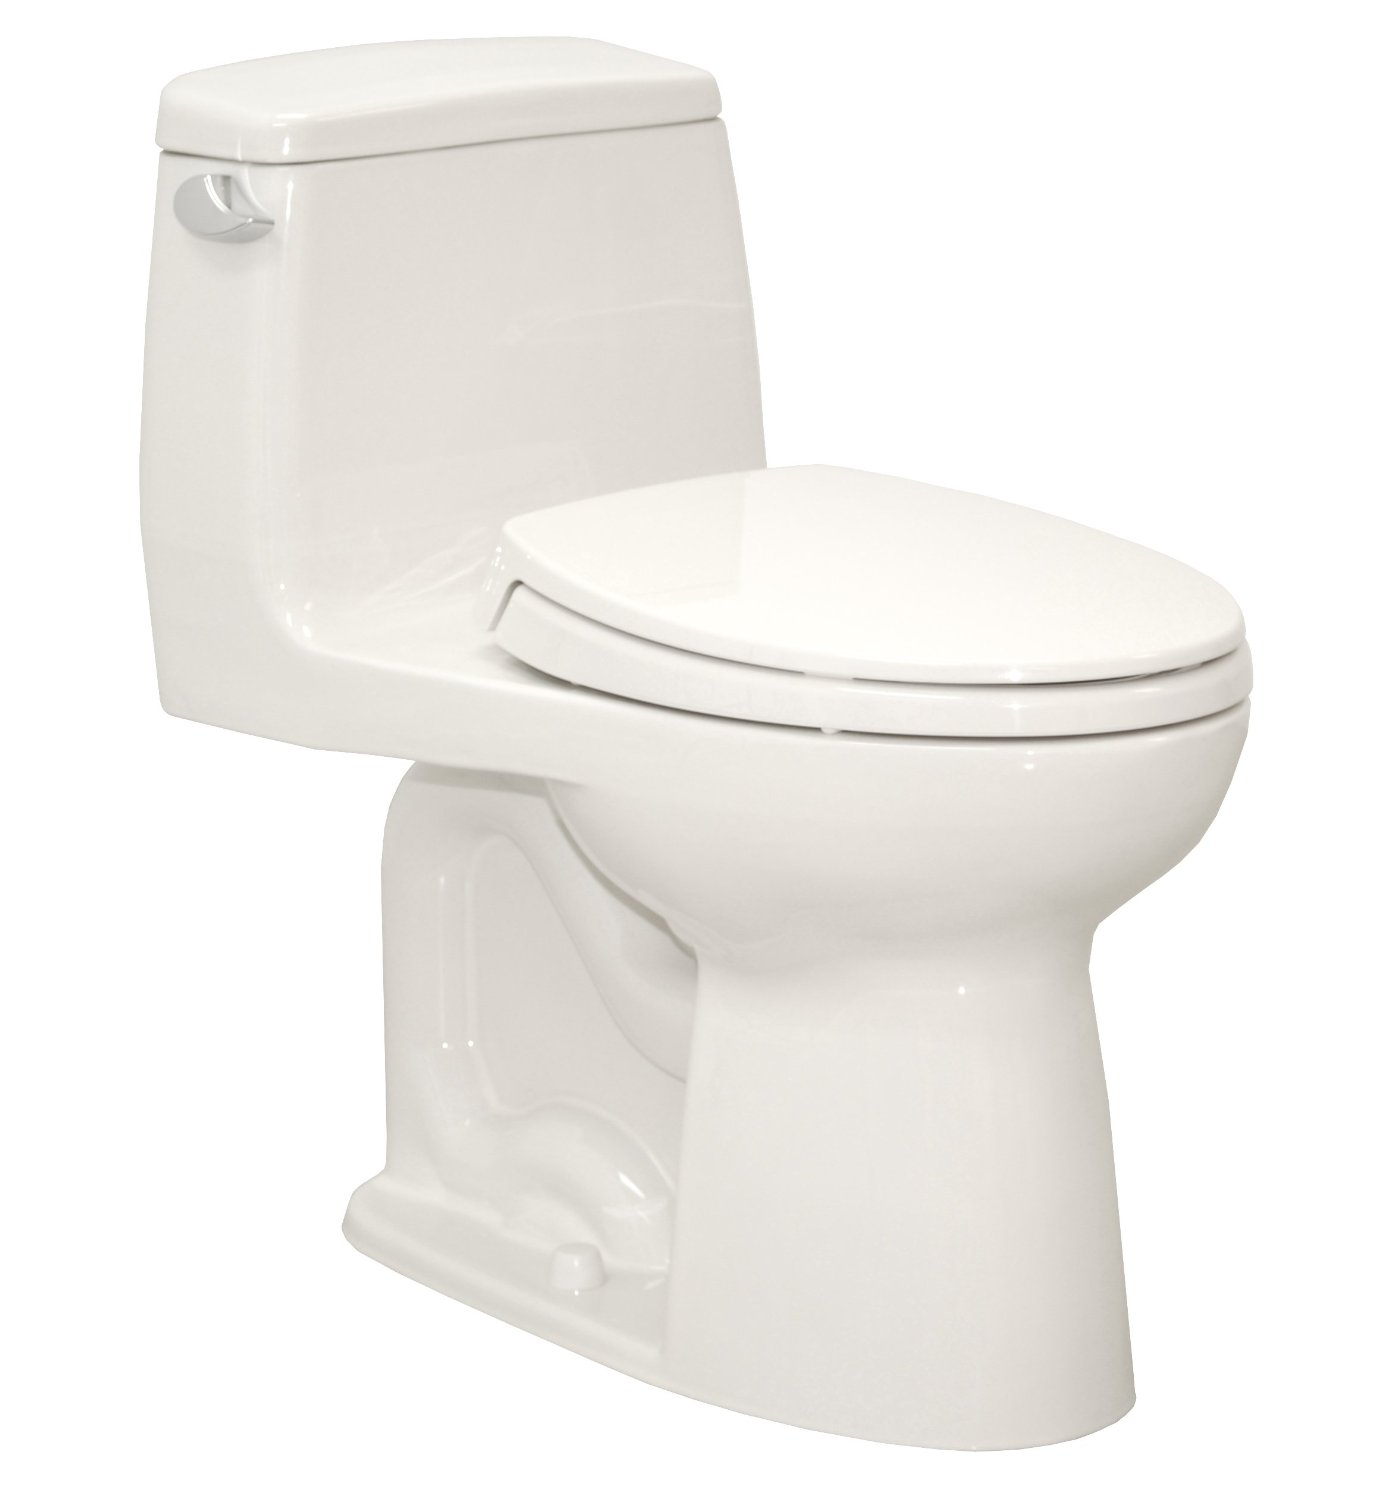 Ultramax Toto Toilet Review